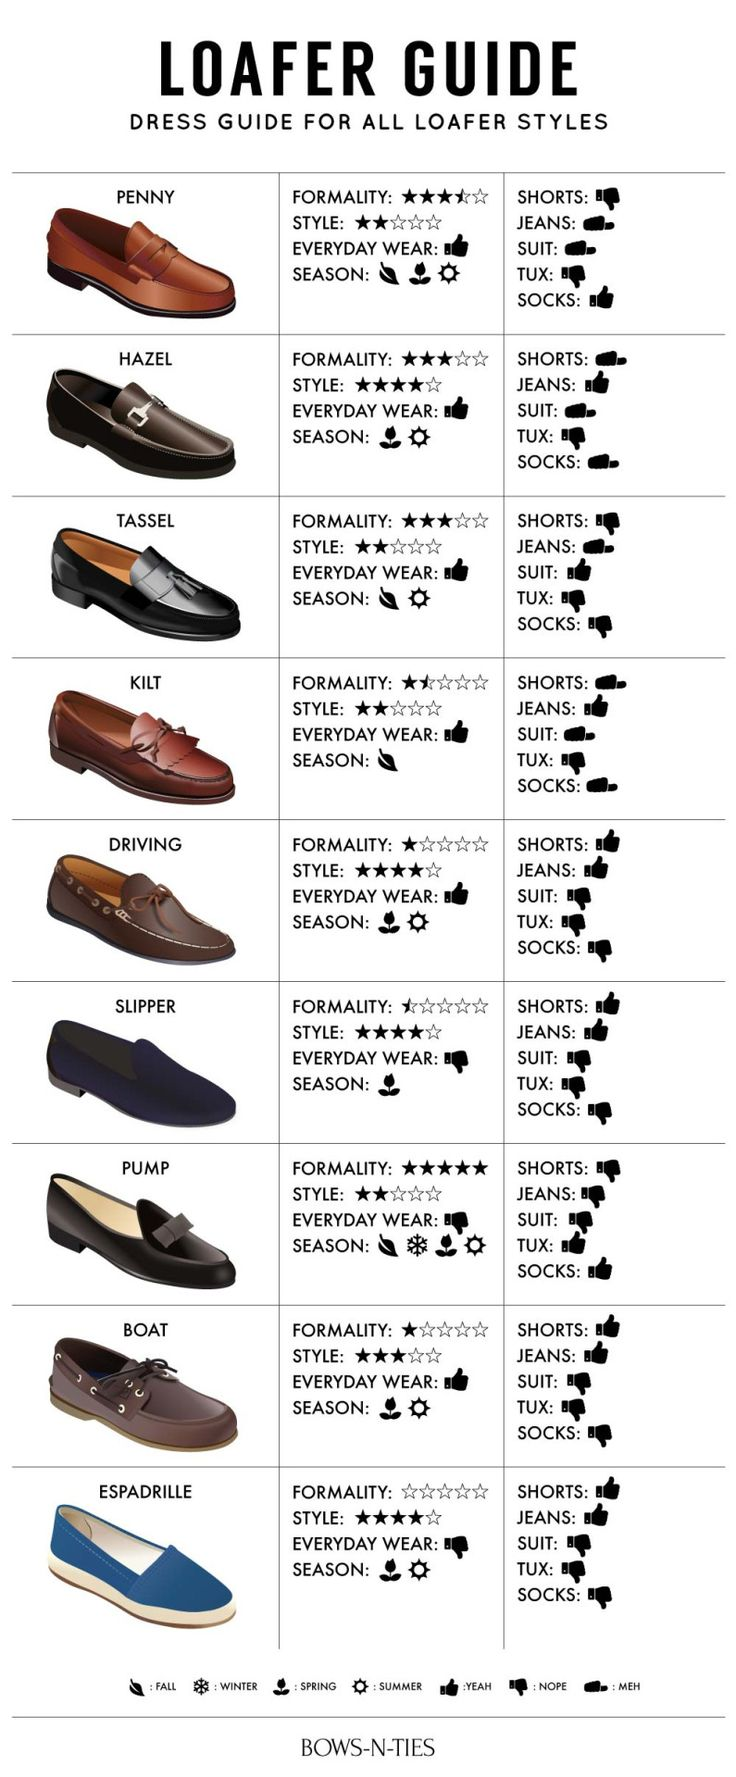 "bows-n-ties: "" Dress Guide To Loafers """